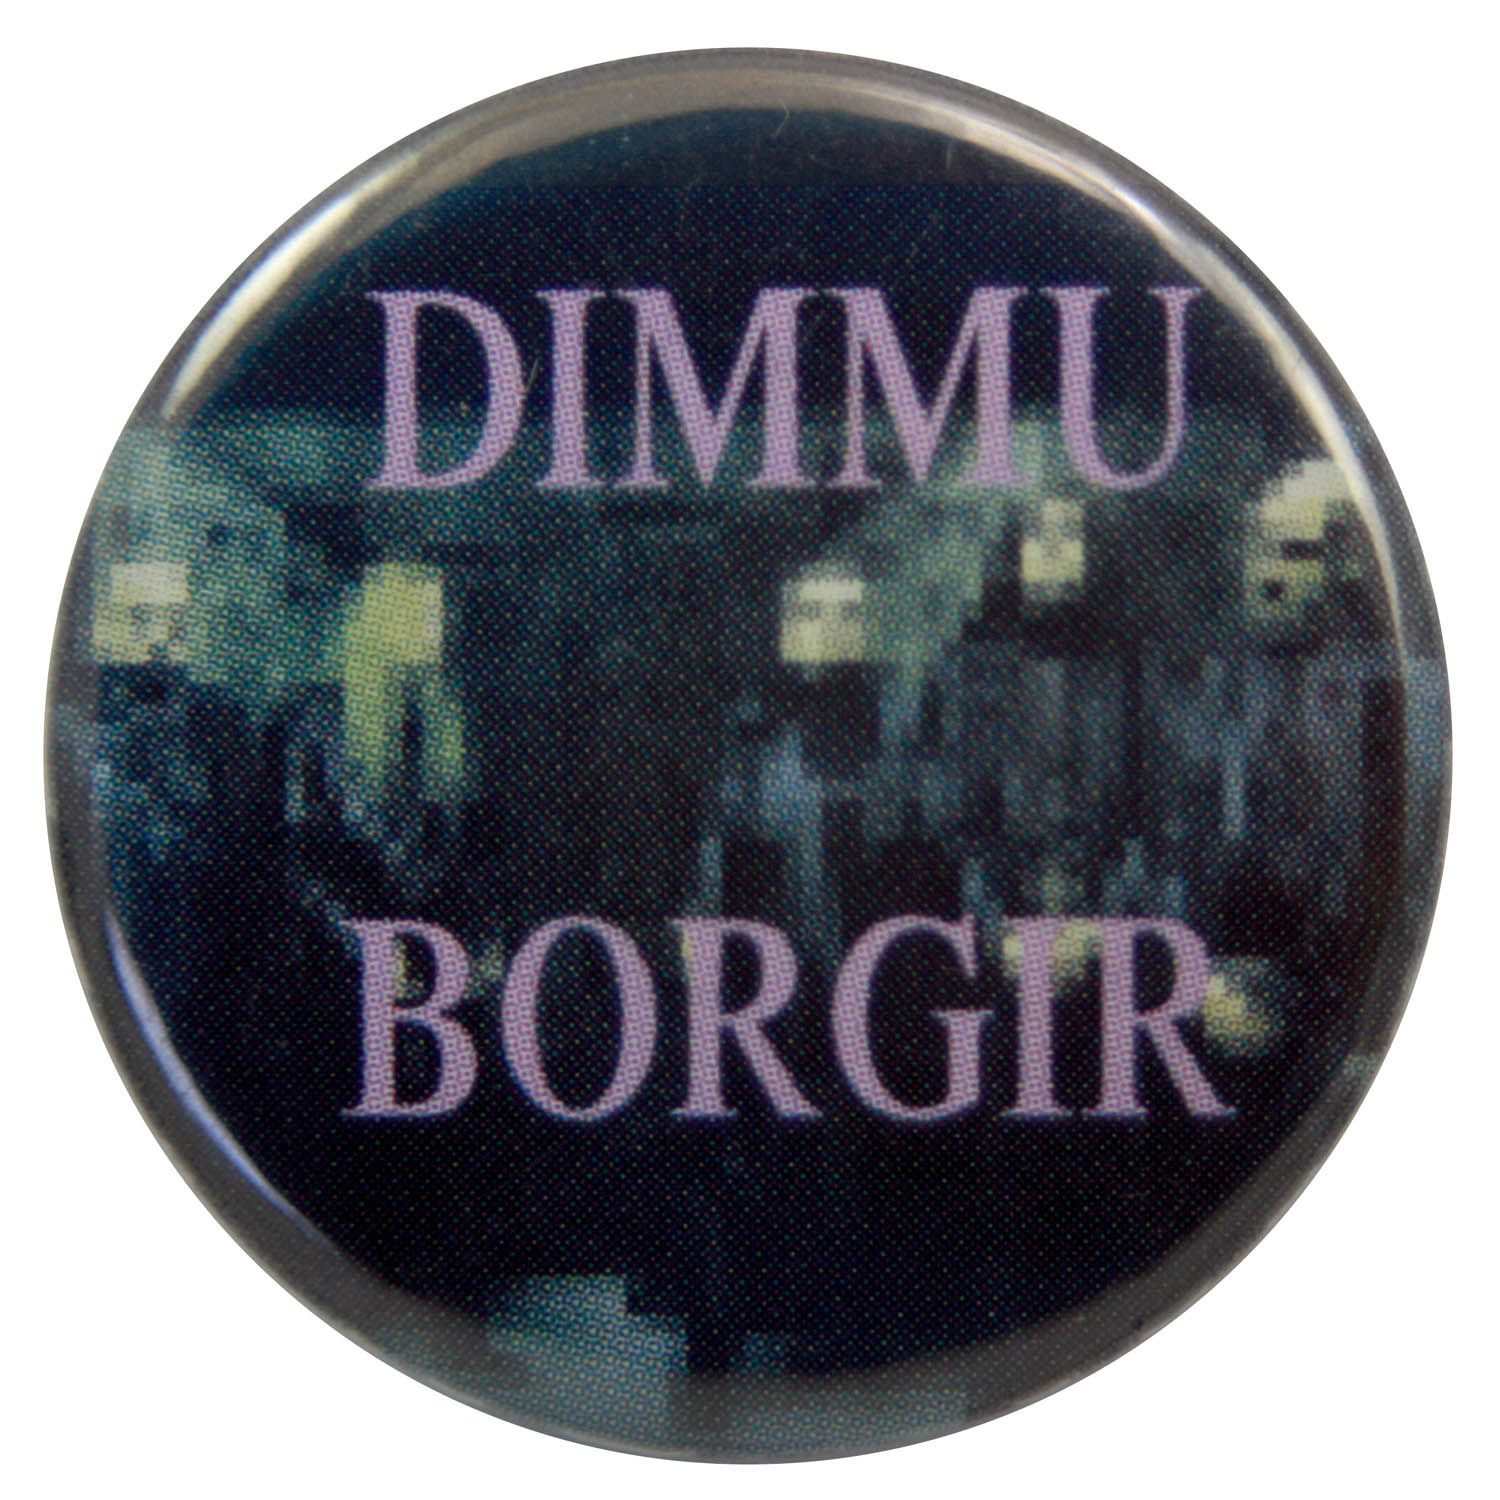 Dimmu Borgir Button Badge